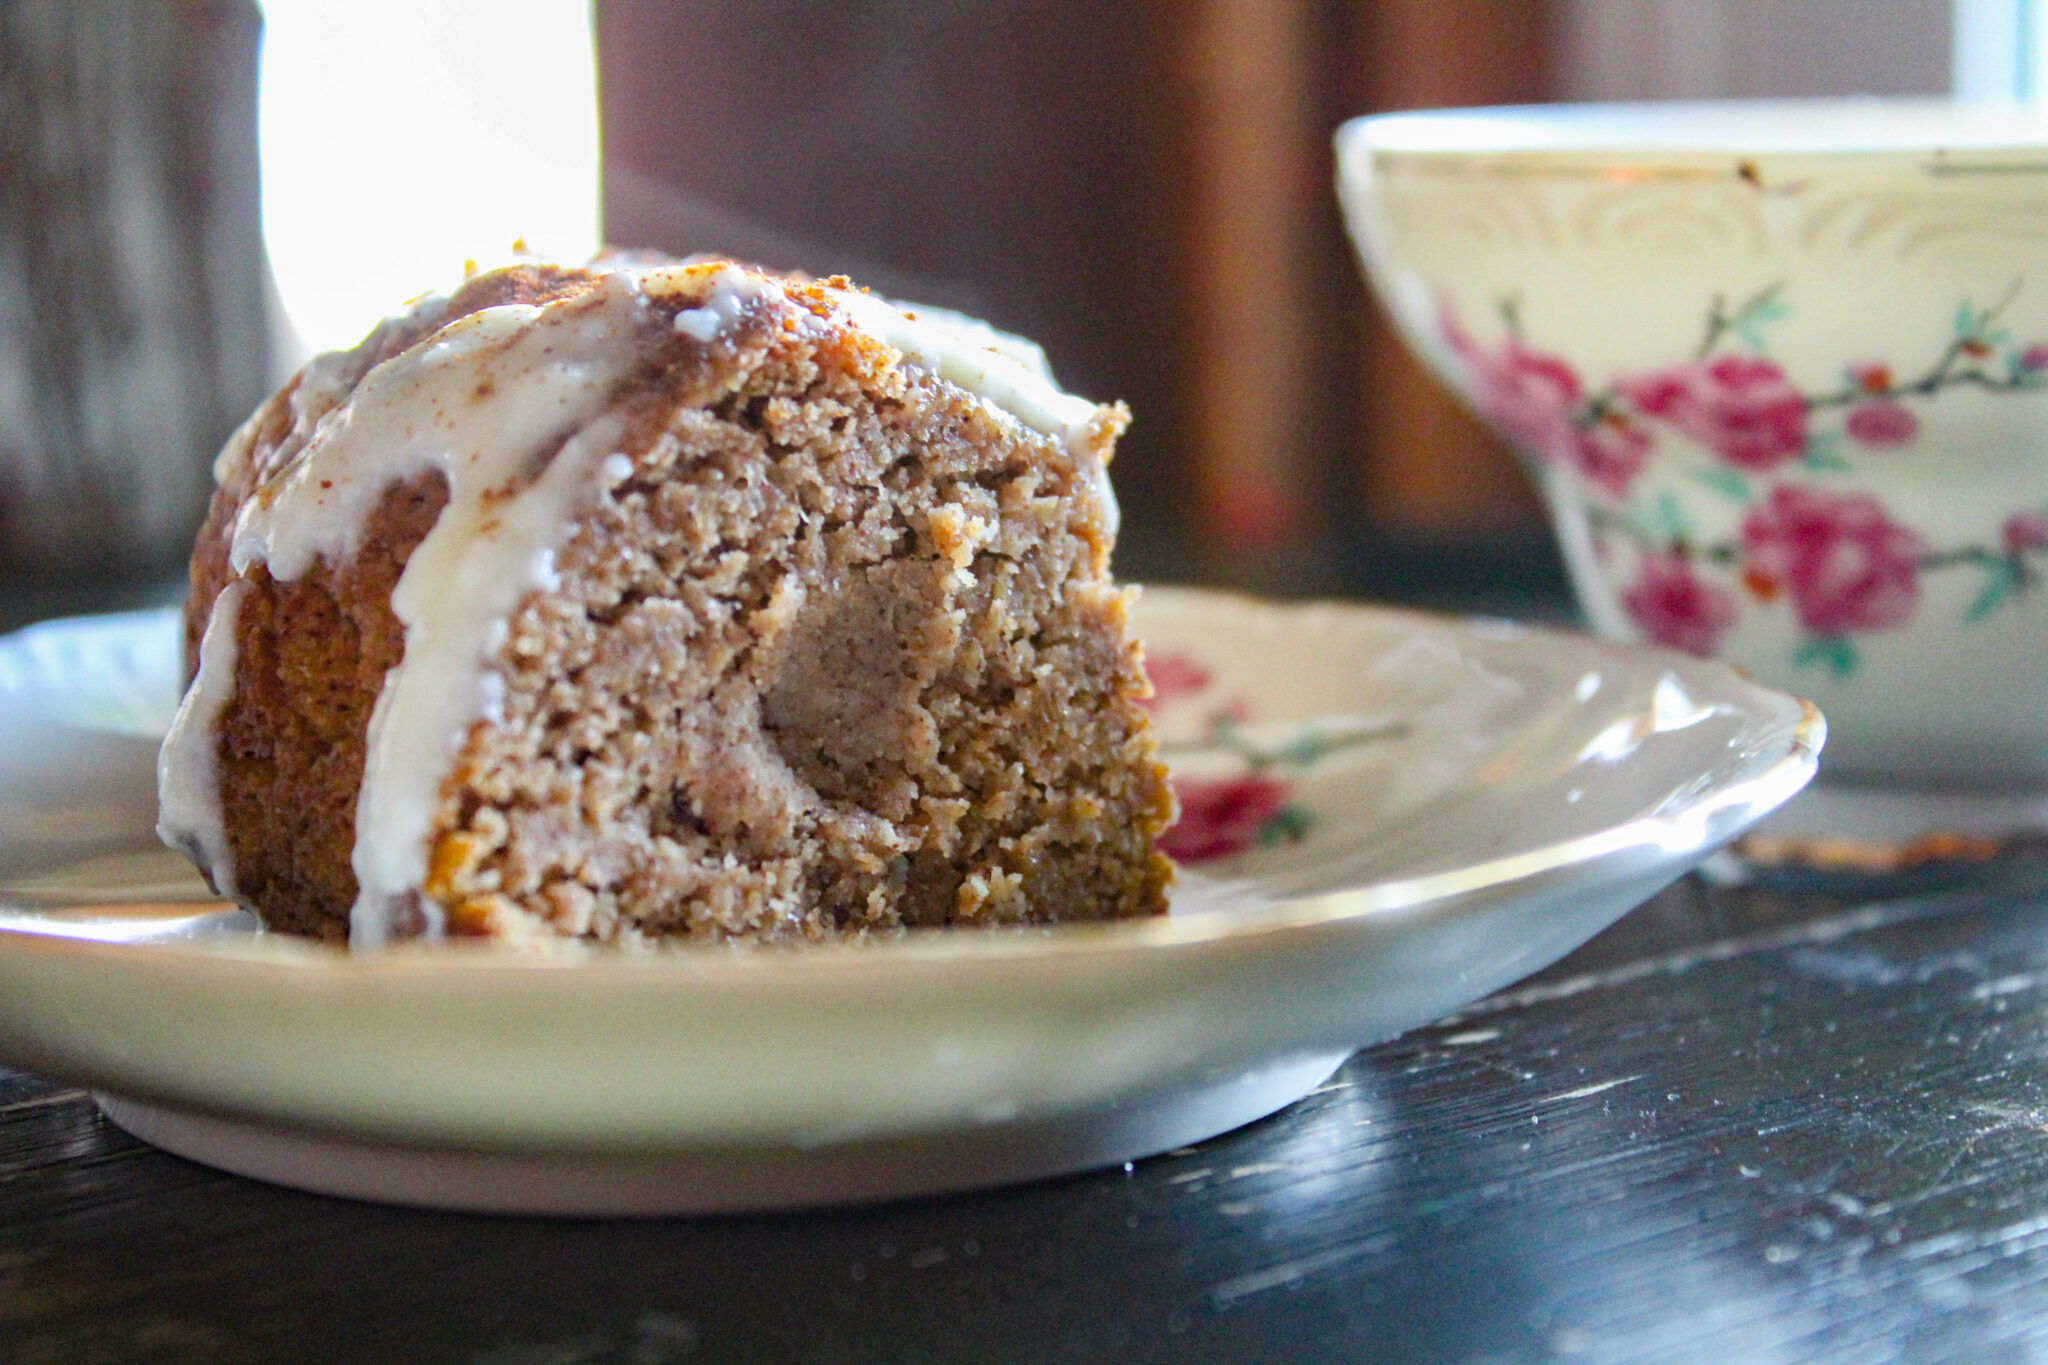 My Pumpkin Spice Coffee Cake is the perfect Fall treat! A perfectly spiced cake topped with a creamy glaze. What could be better?